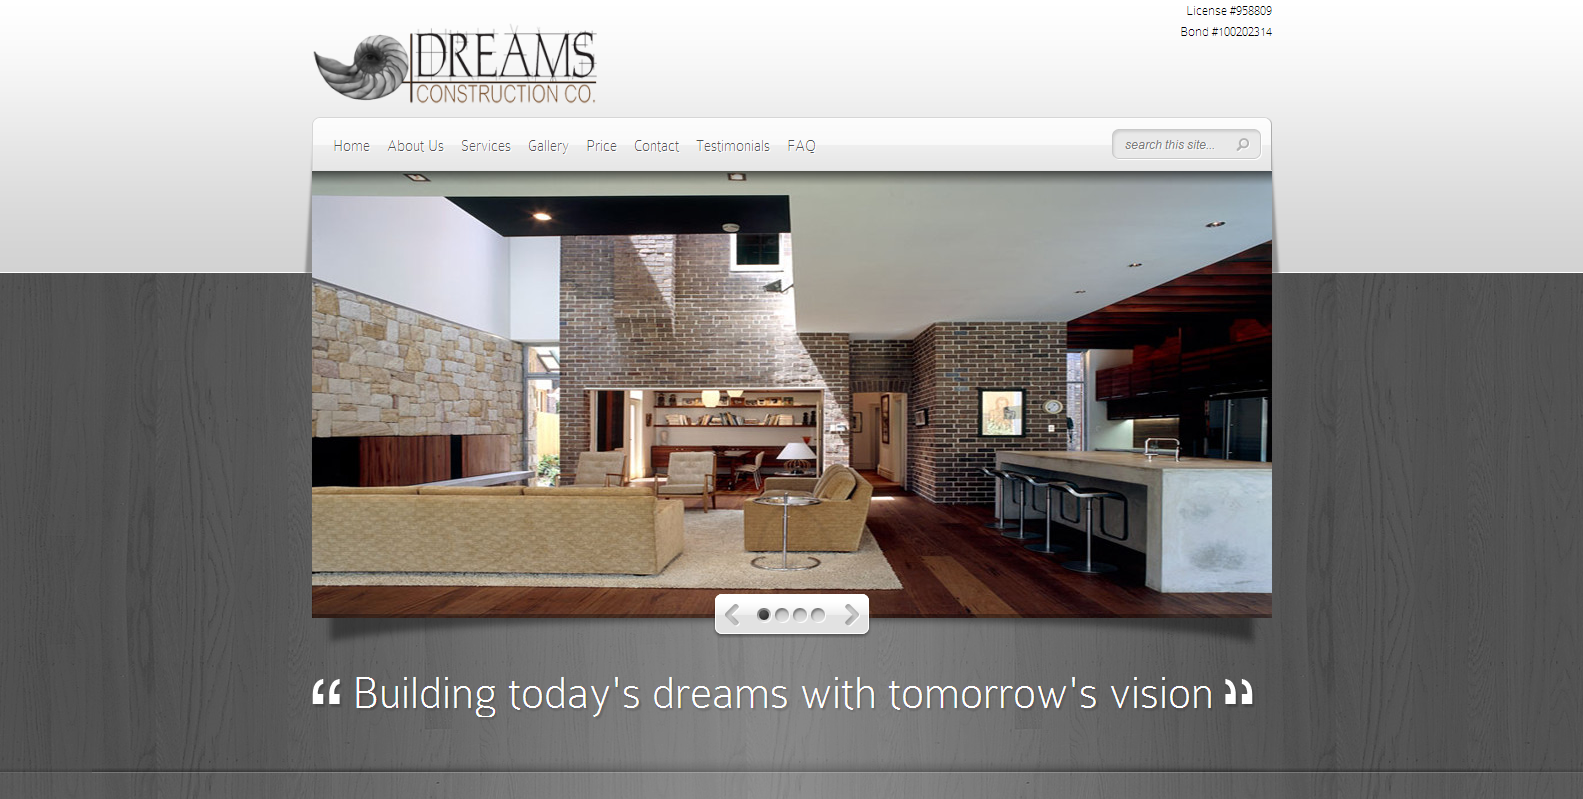 Dreams Construction Company